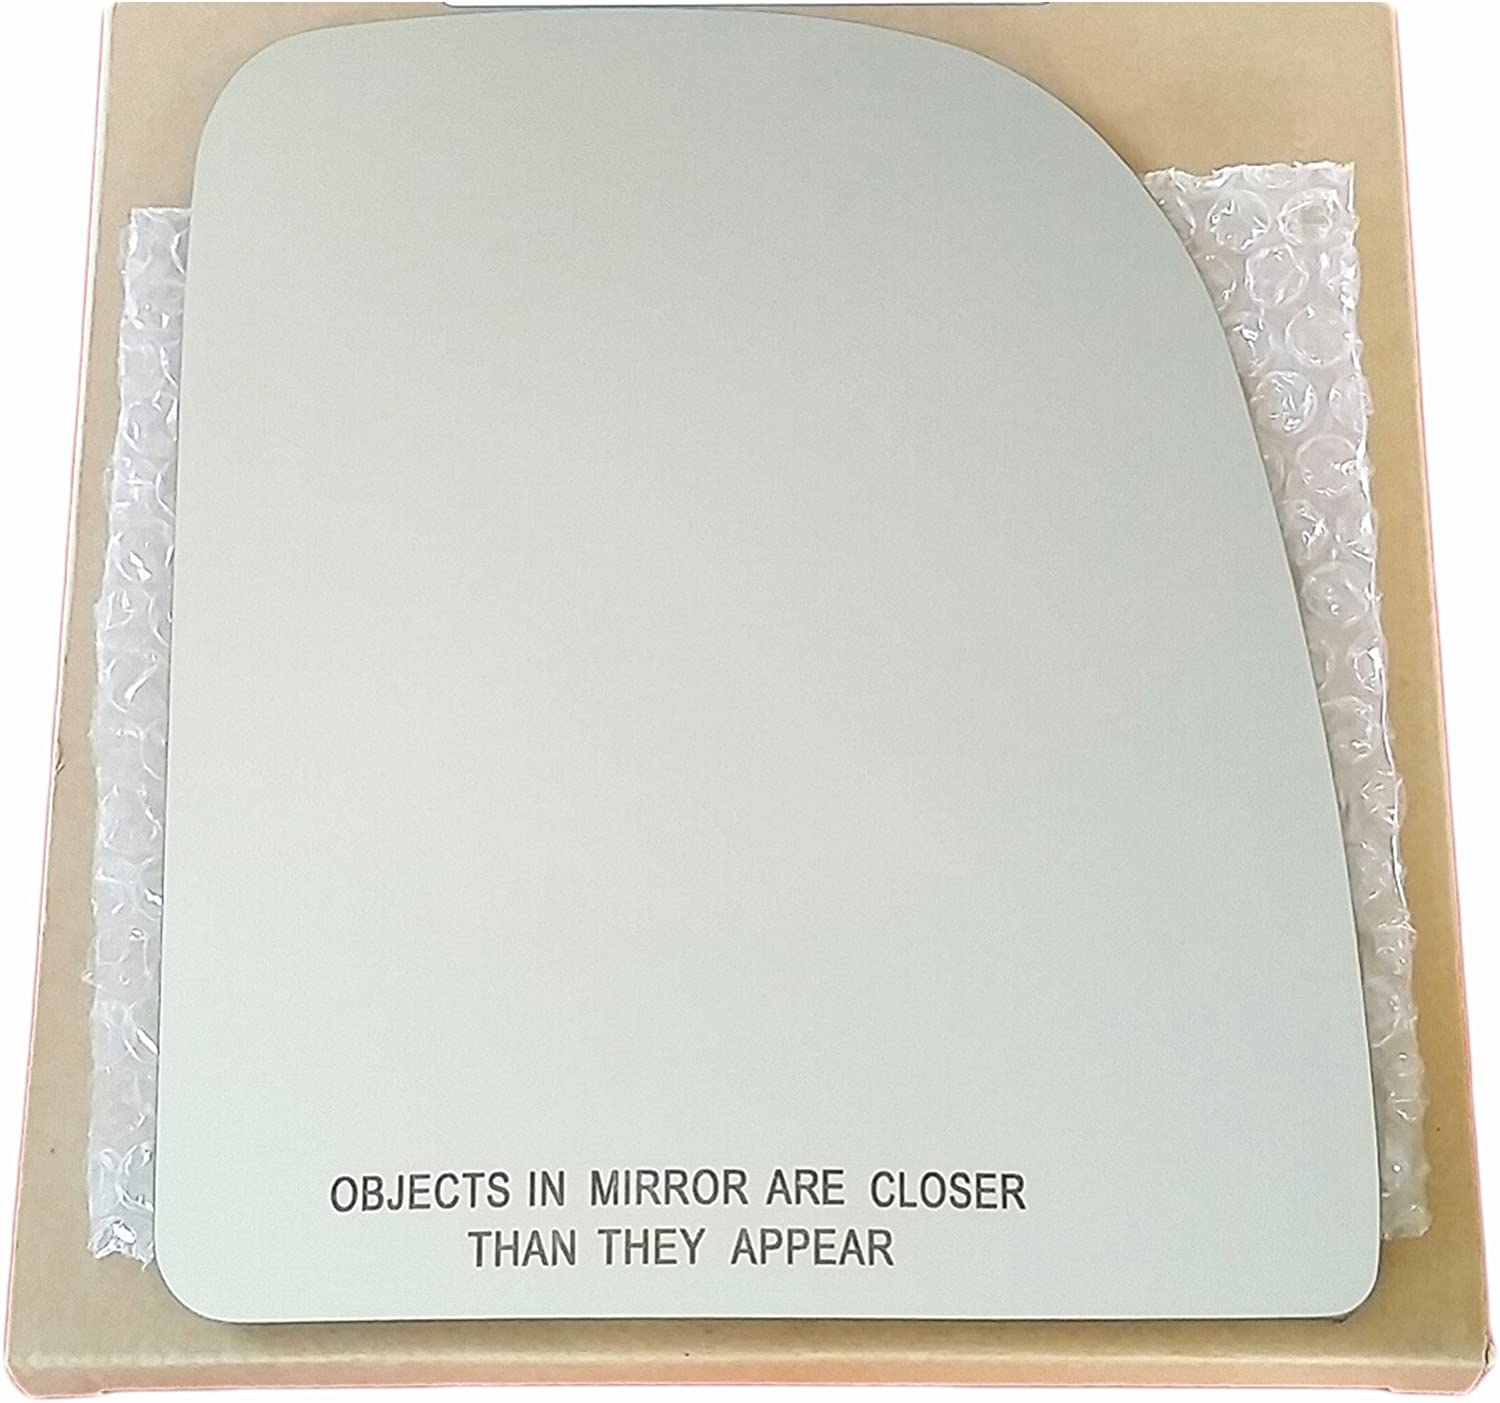 F-250 Upper Flat Mirror Glass F-350 Driver Side Adhesive For Ford F-150